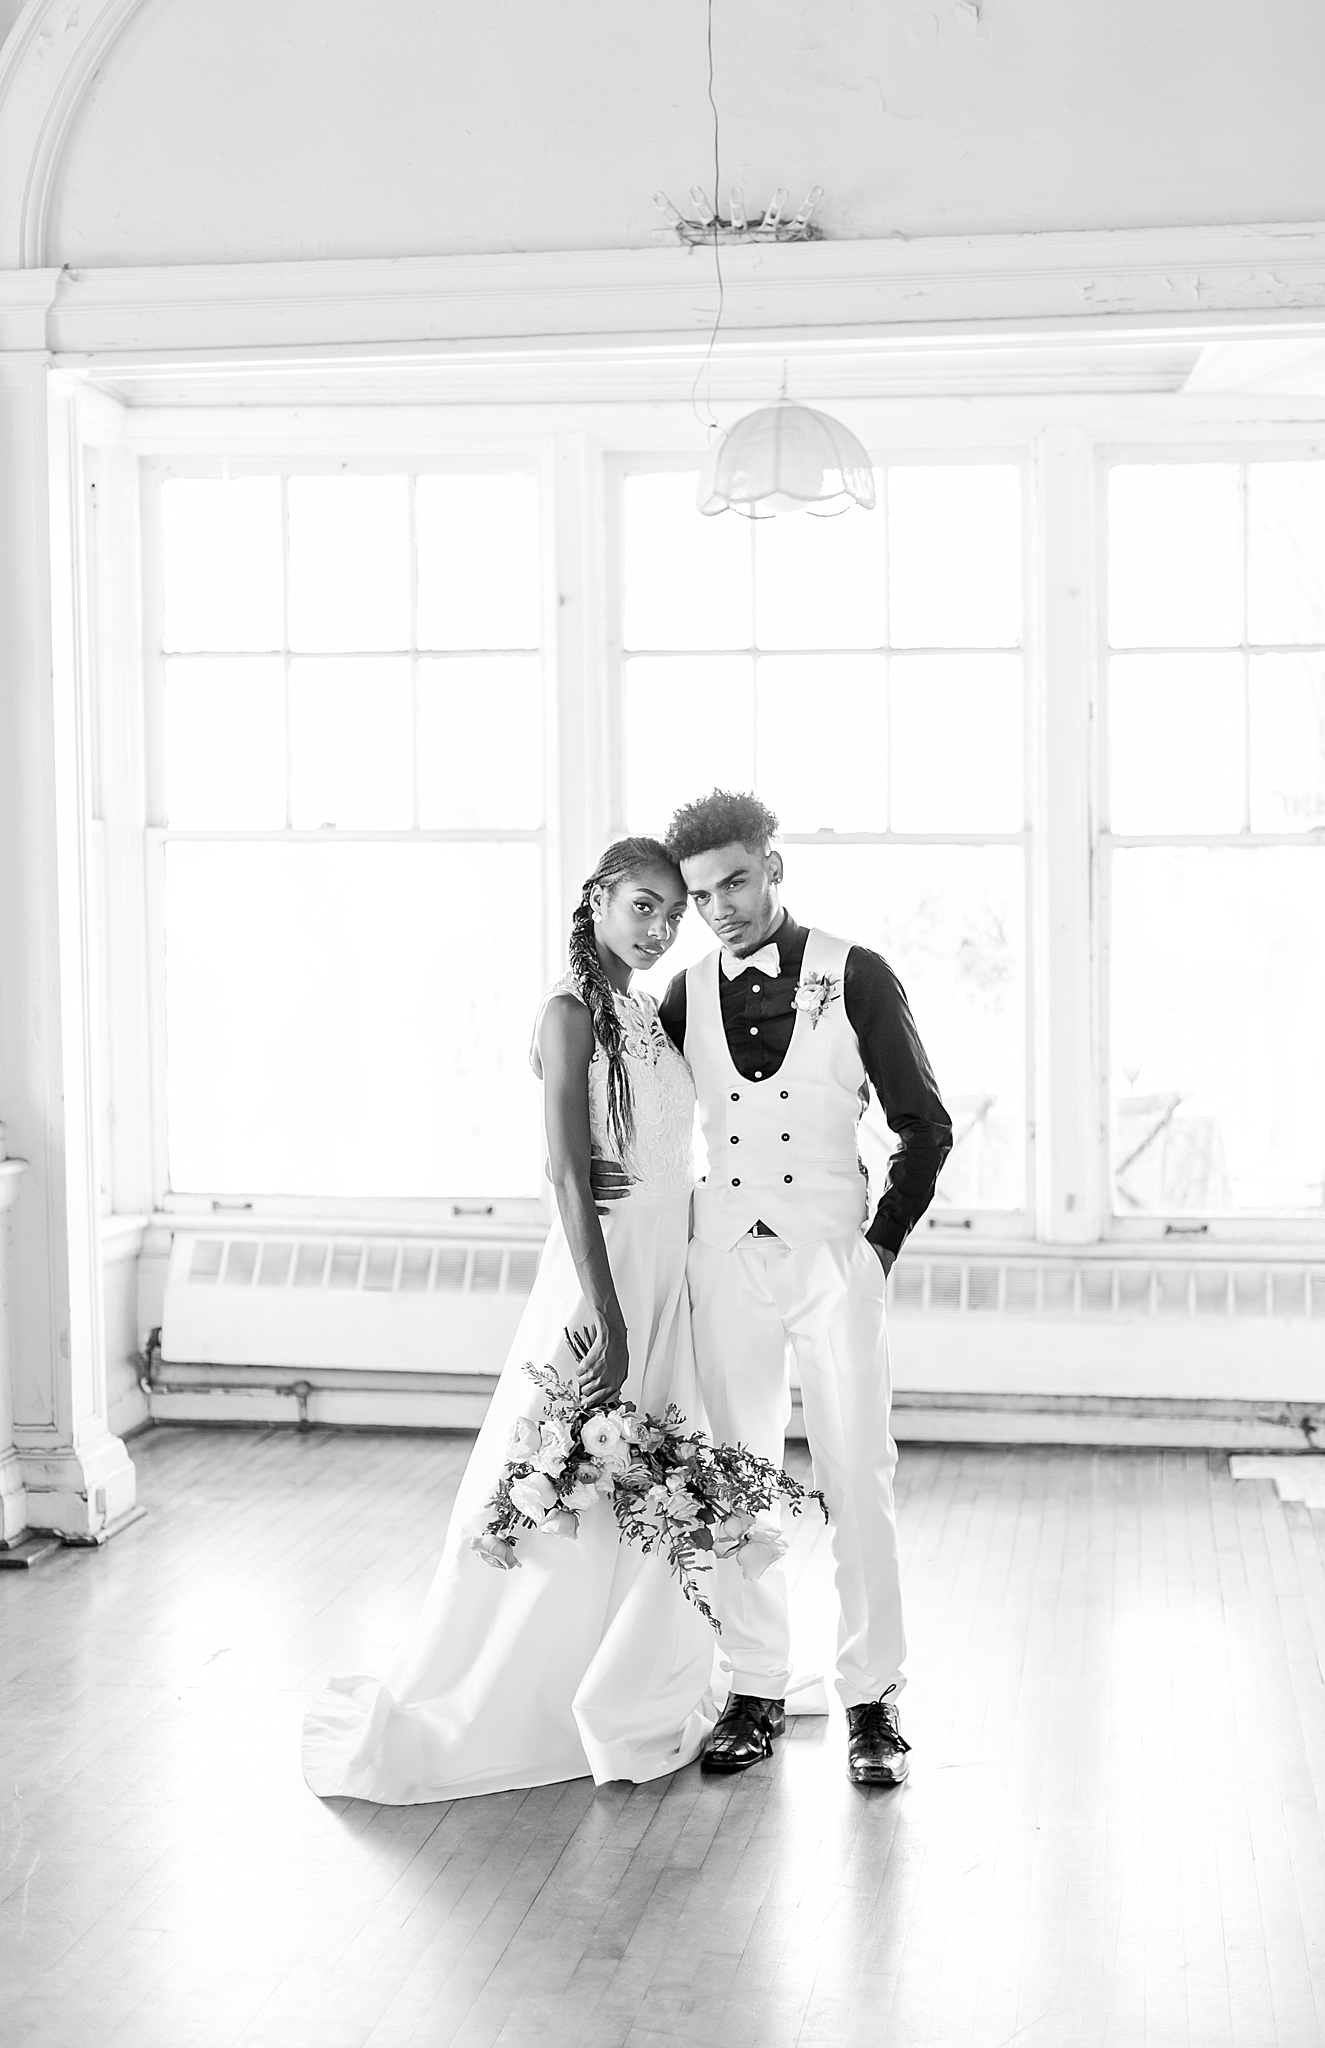 intimate-elopement-wedding-photography-at-belle-isle-boat-house-detroit-michigan-by-courtney-carolyn-photography_0038.jpg